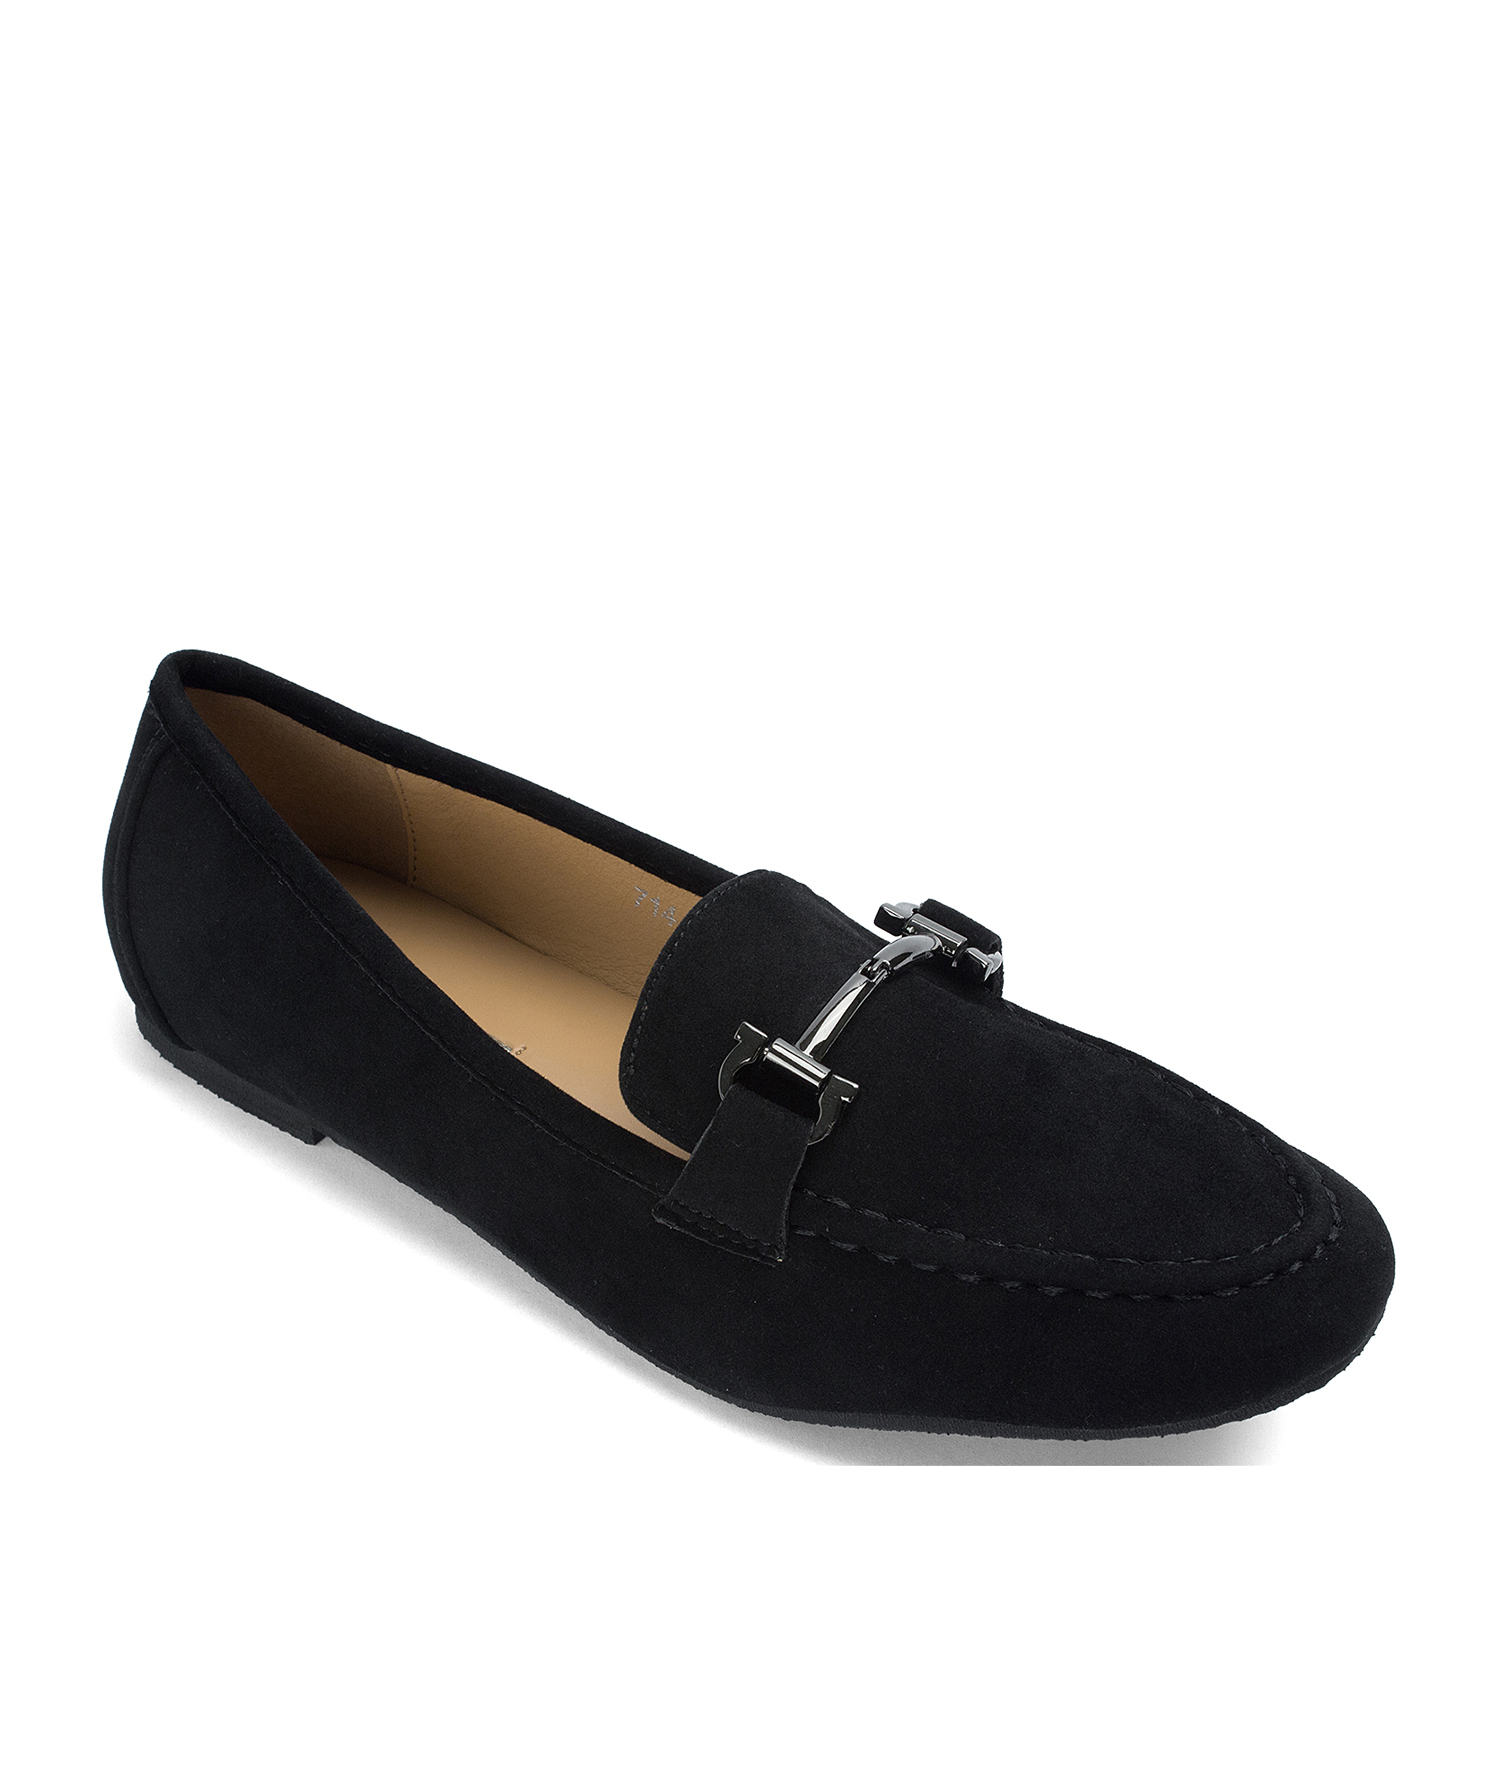 65e637d192f Comfortable Womens Classic Penny Loafers - annakastleshoes.com